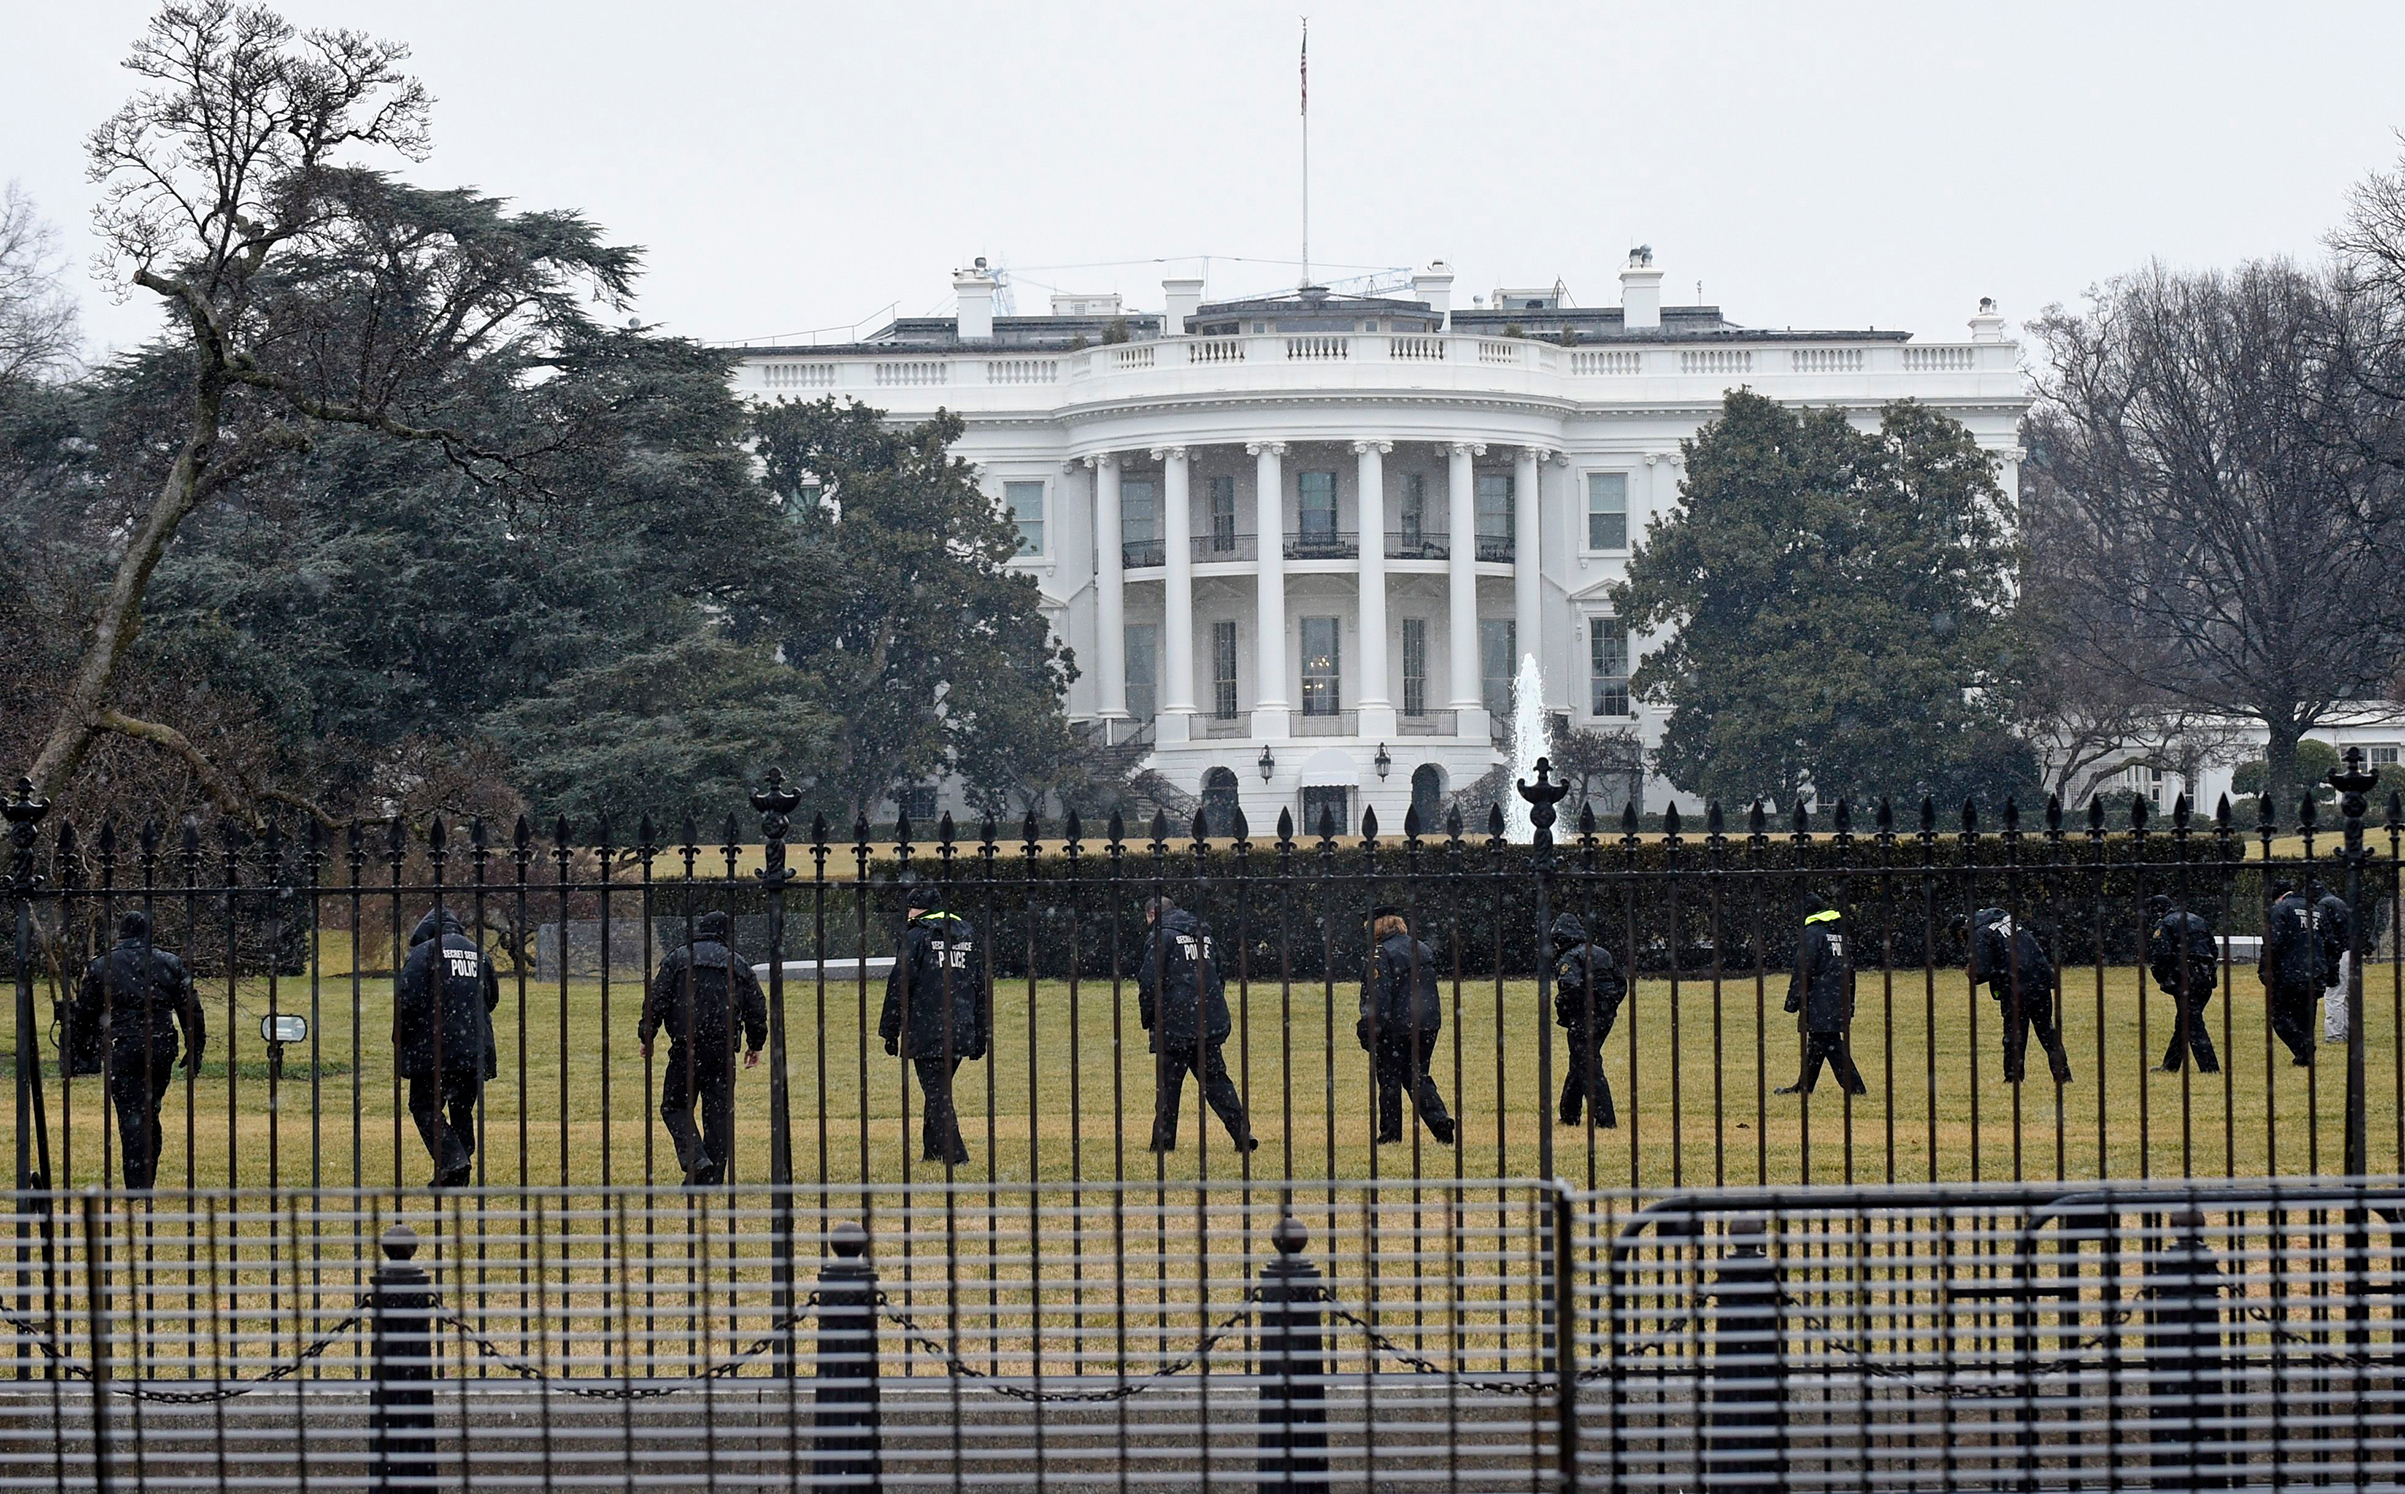 Secret Service officers search the south grounds of the White House in Washington, after a device, possibly an unmanned aerial drone, was found on the White House grounds on Jan. 26, 2015.